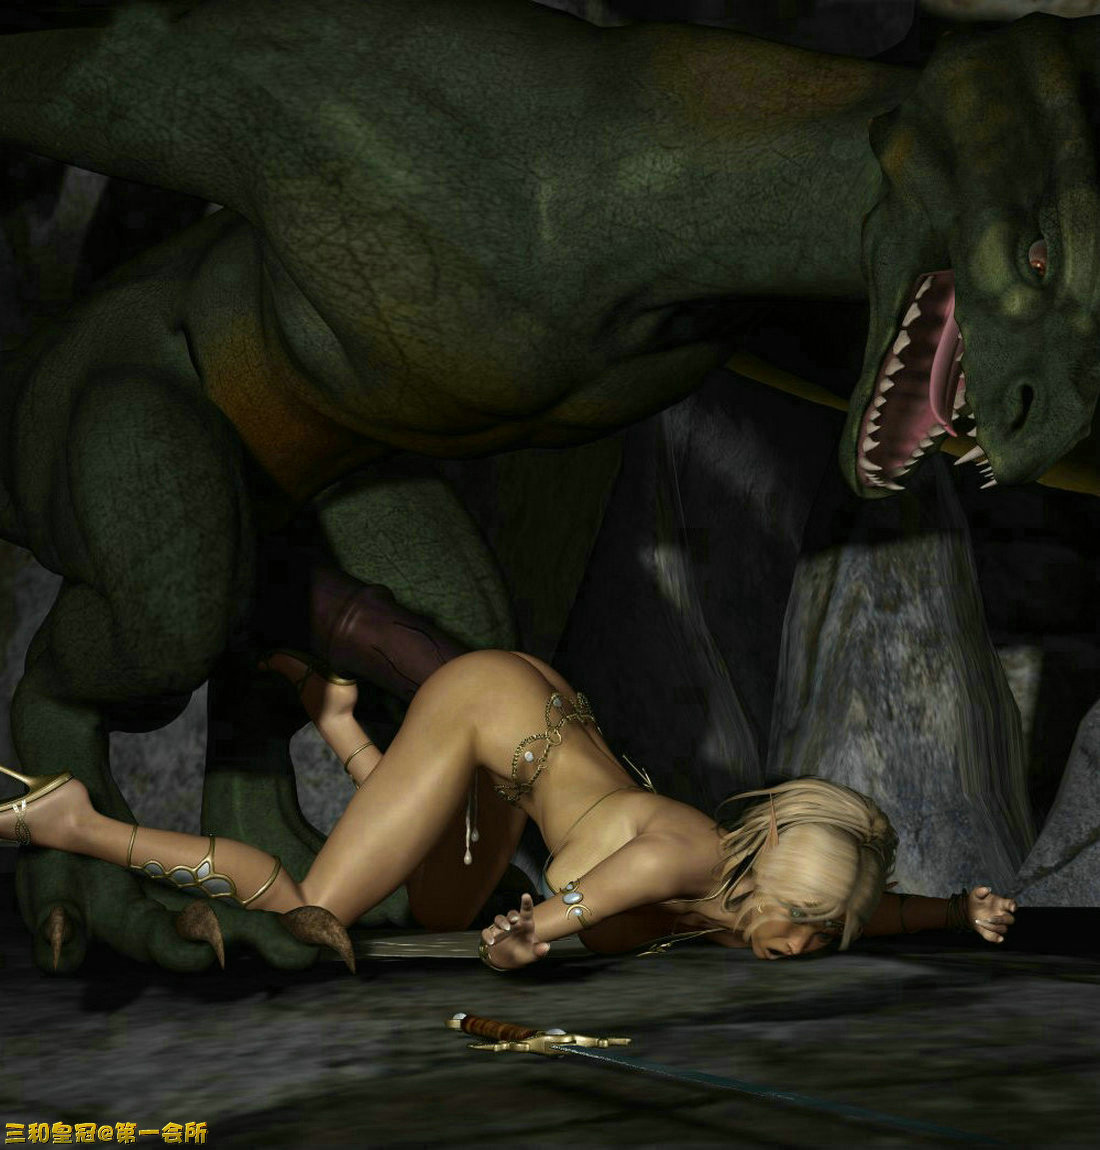 Elfin princess gets fucked by a dragon  hardcore comics